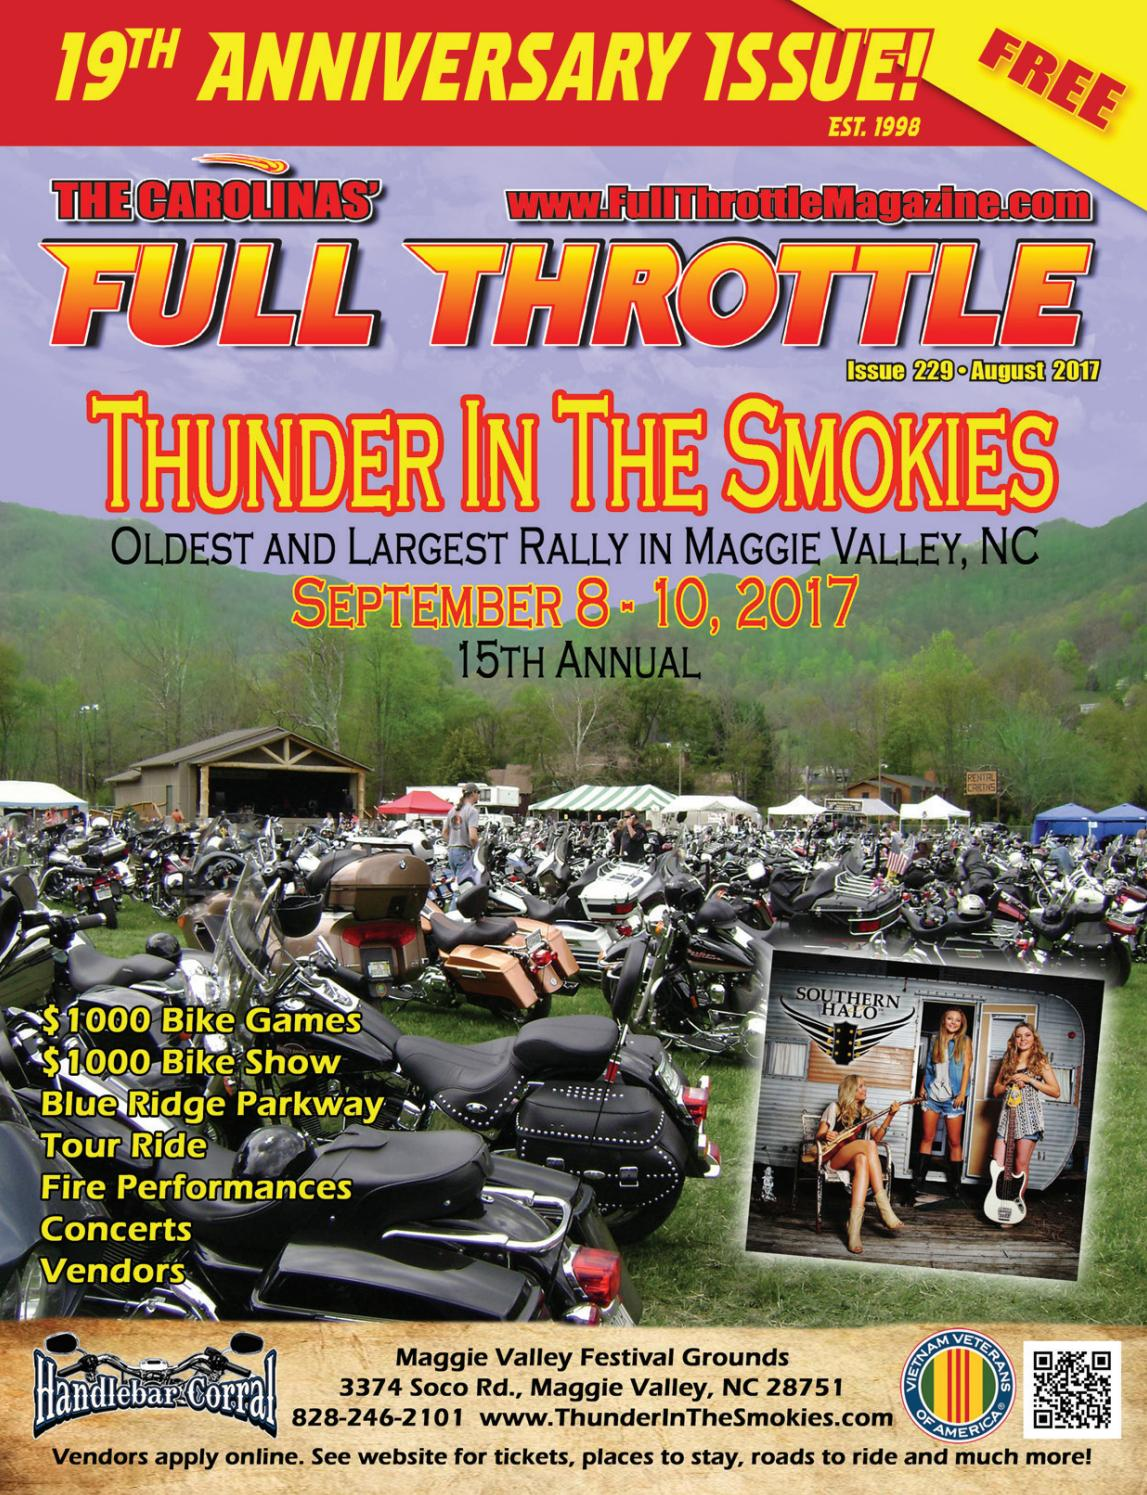 One man s junk cherokee county sc - August 2017 Issue 229 By The Carolinas Full Throttle Magazine Issuu